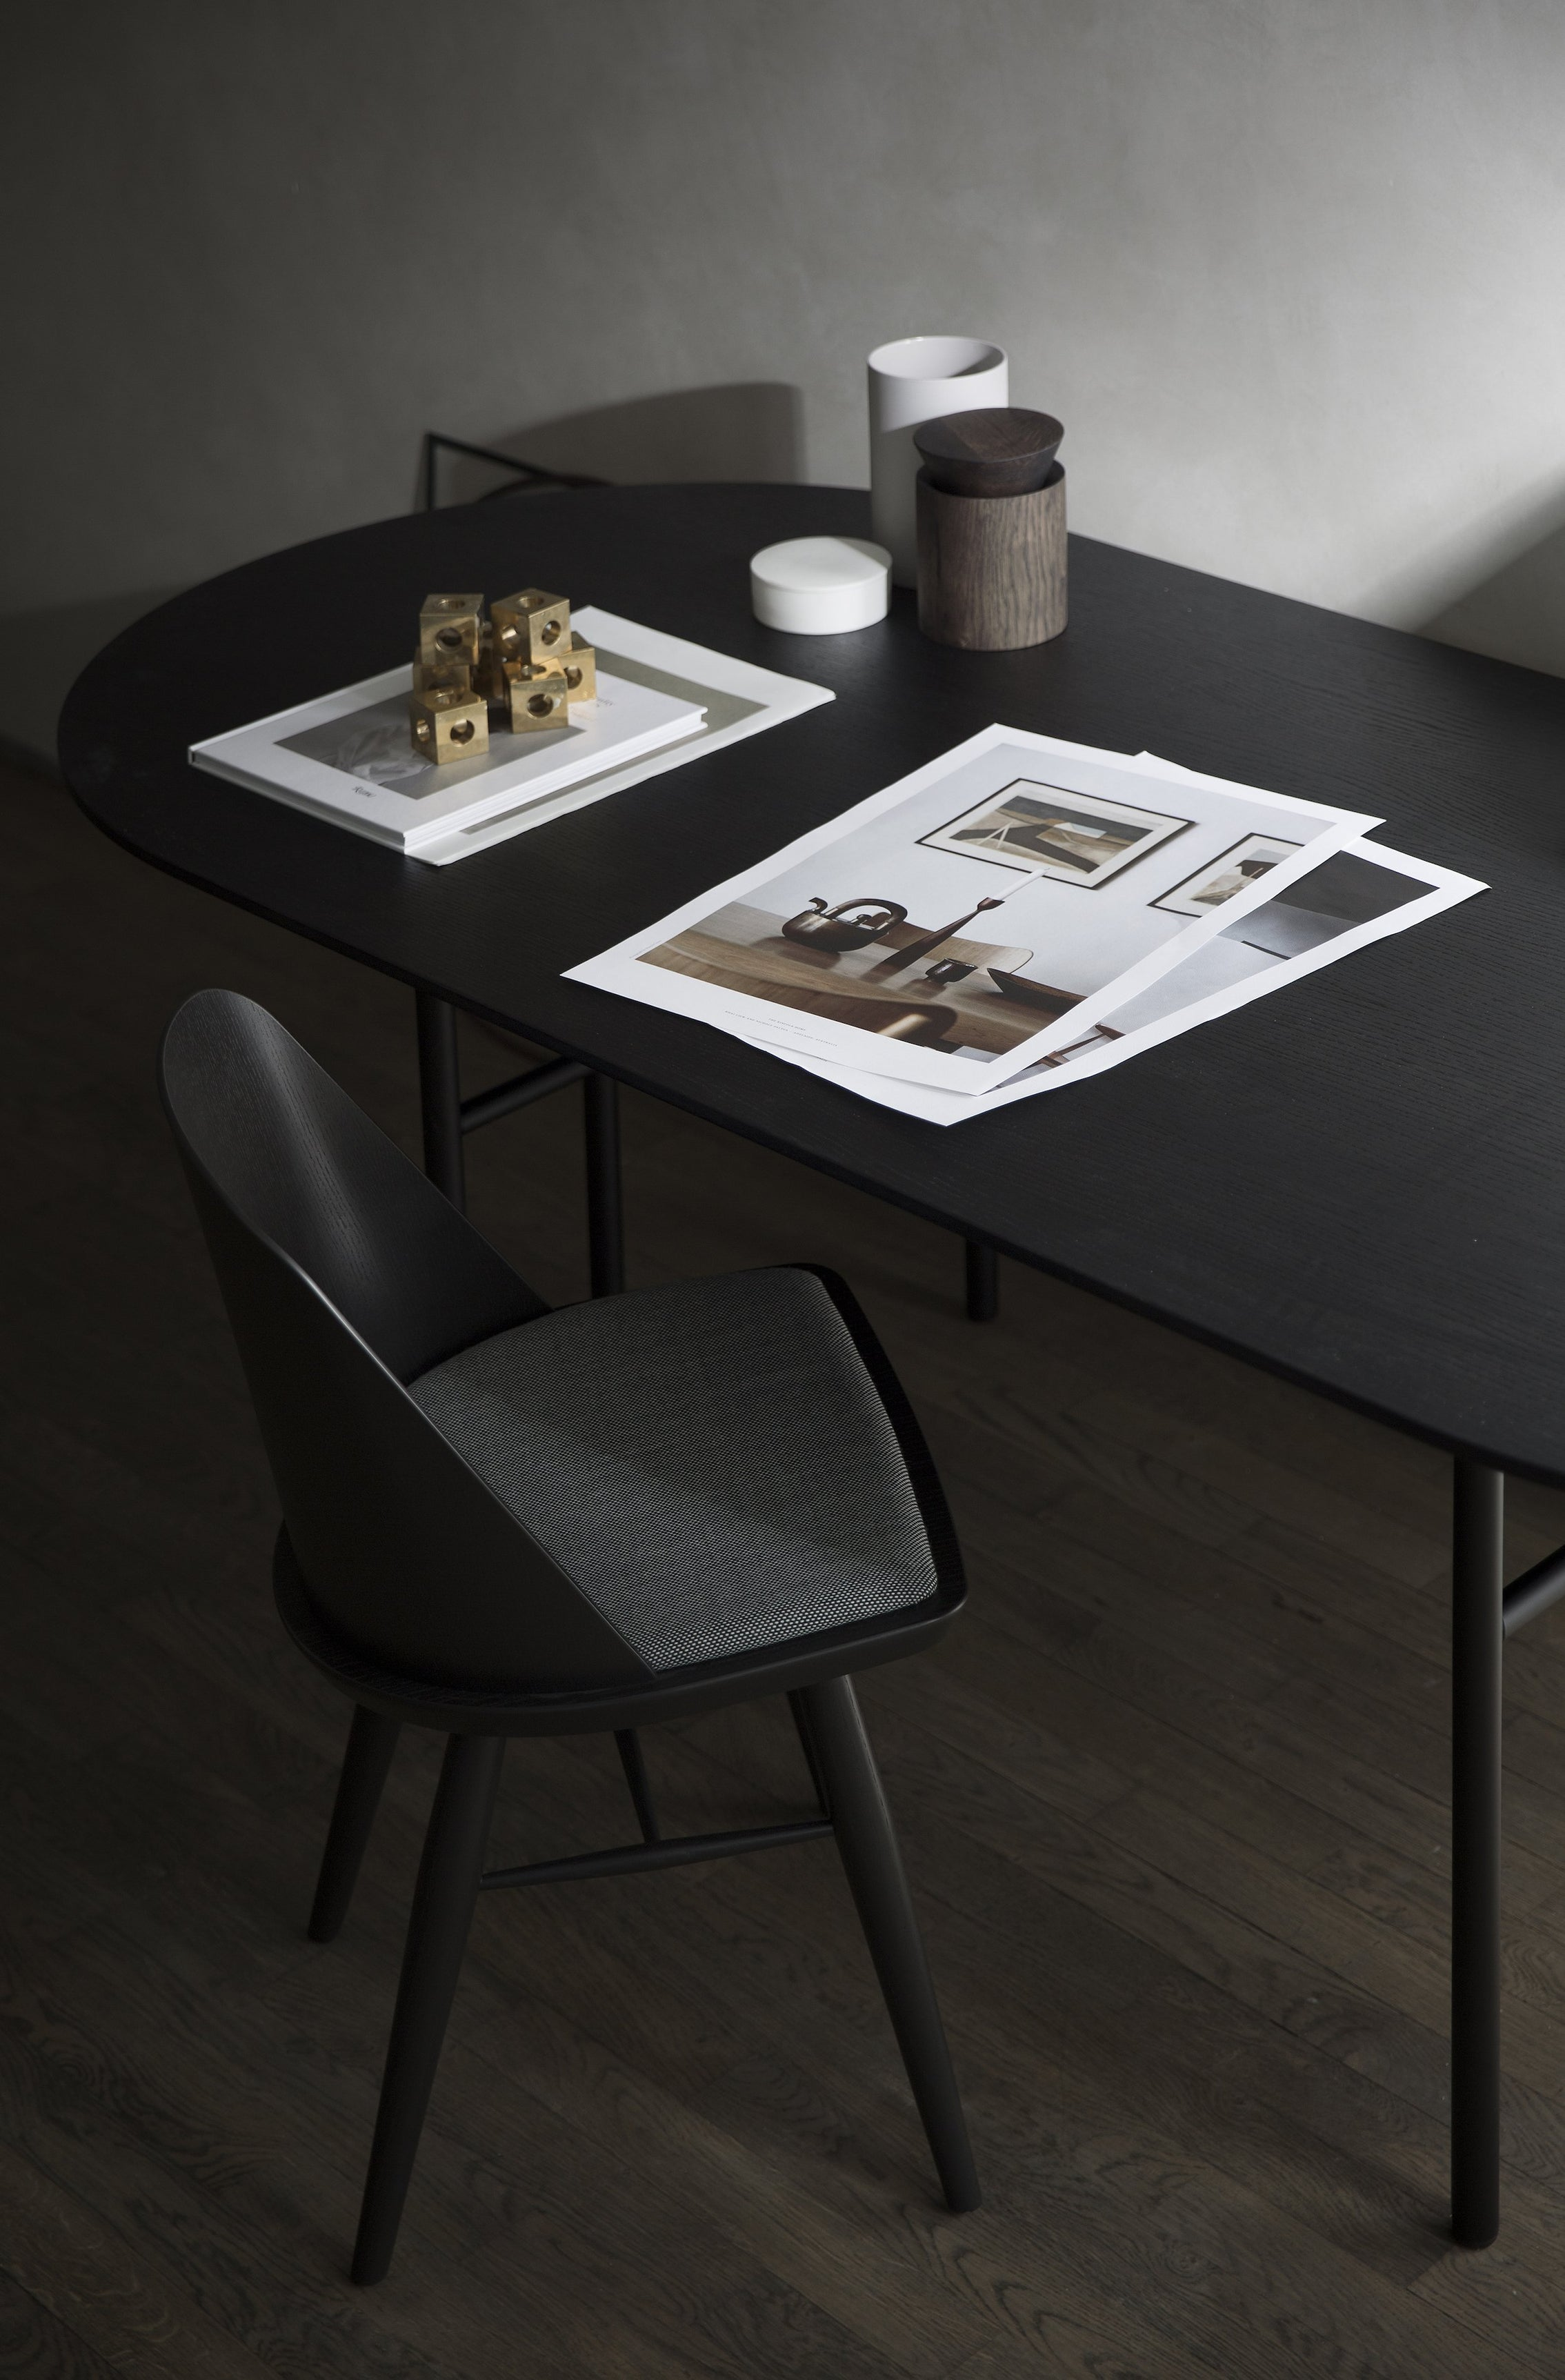 Snaregade Oval Table-Menu-Black Veneer-danish-interior-furniture-denmark-Average-design-toronto-canada